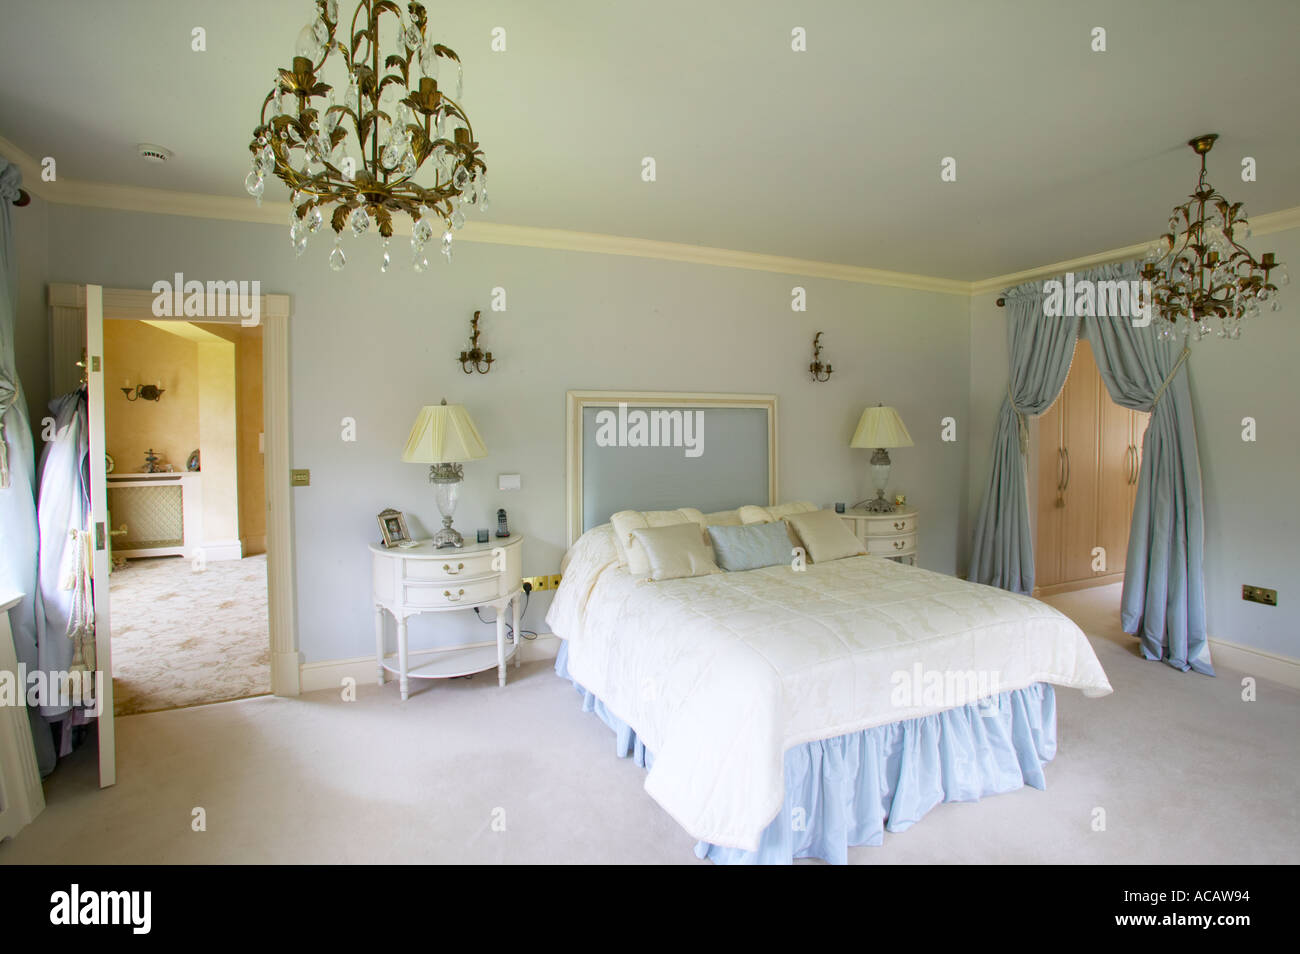 Master Bedroom Of Large Home With Dressing Room And En Suite   Stock Image